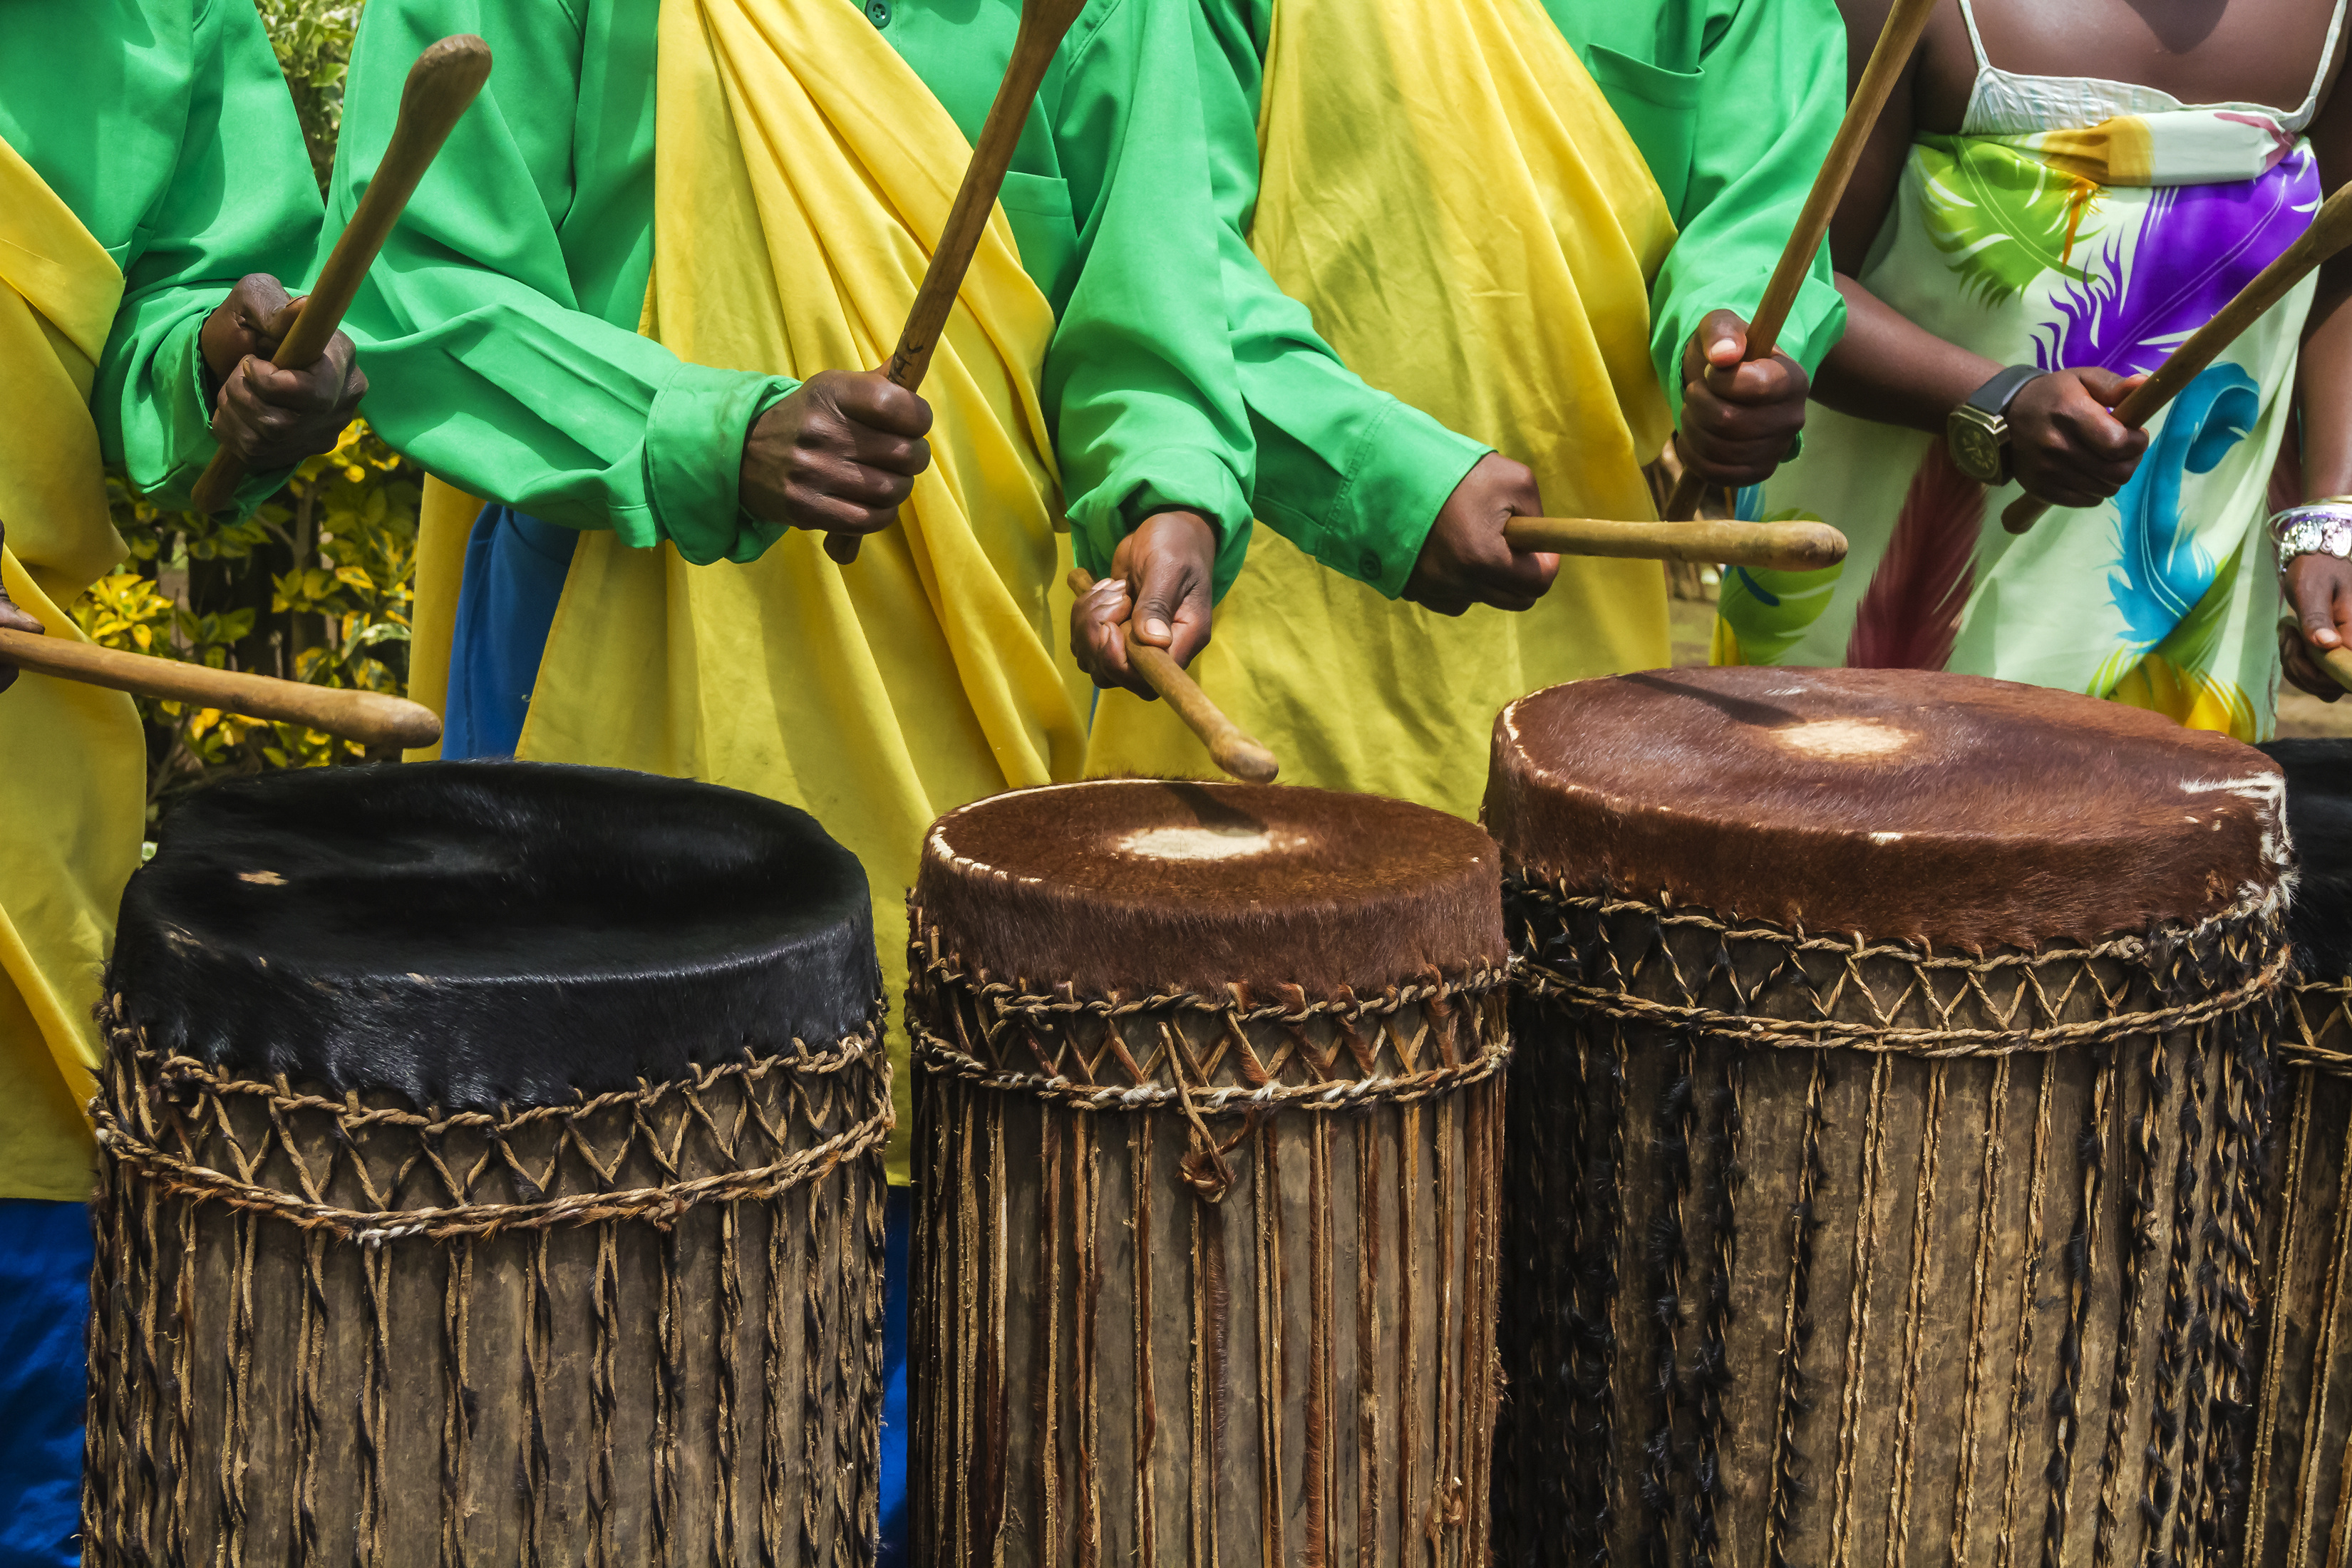 Detail of some african drummers